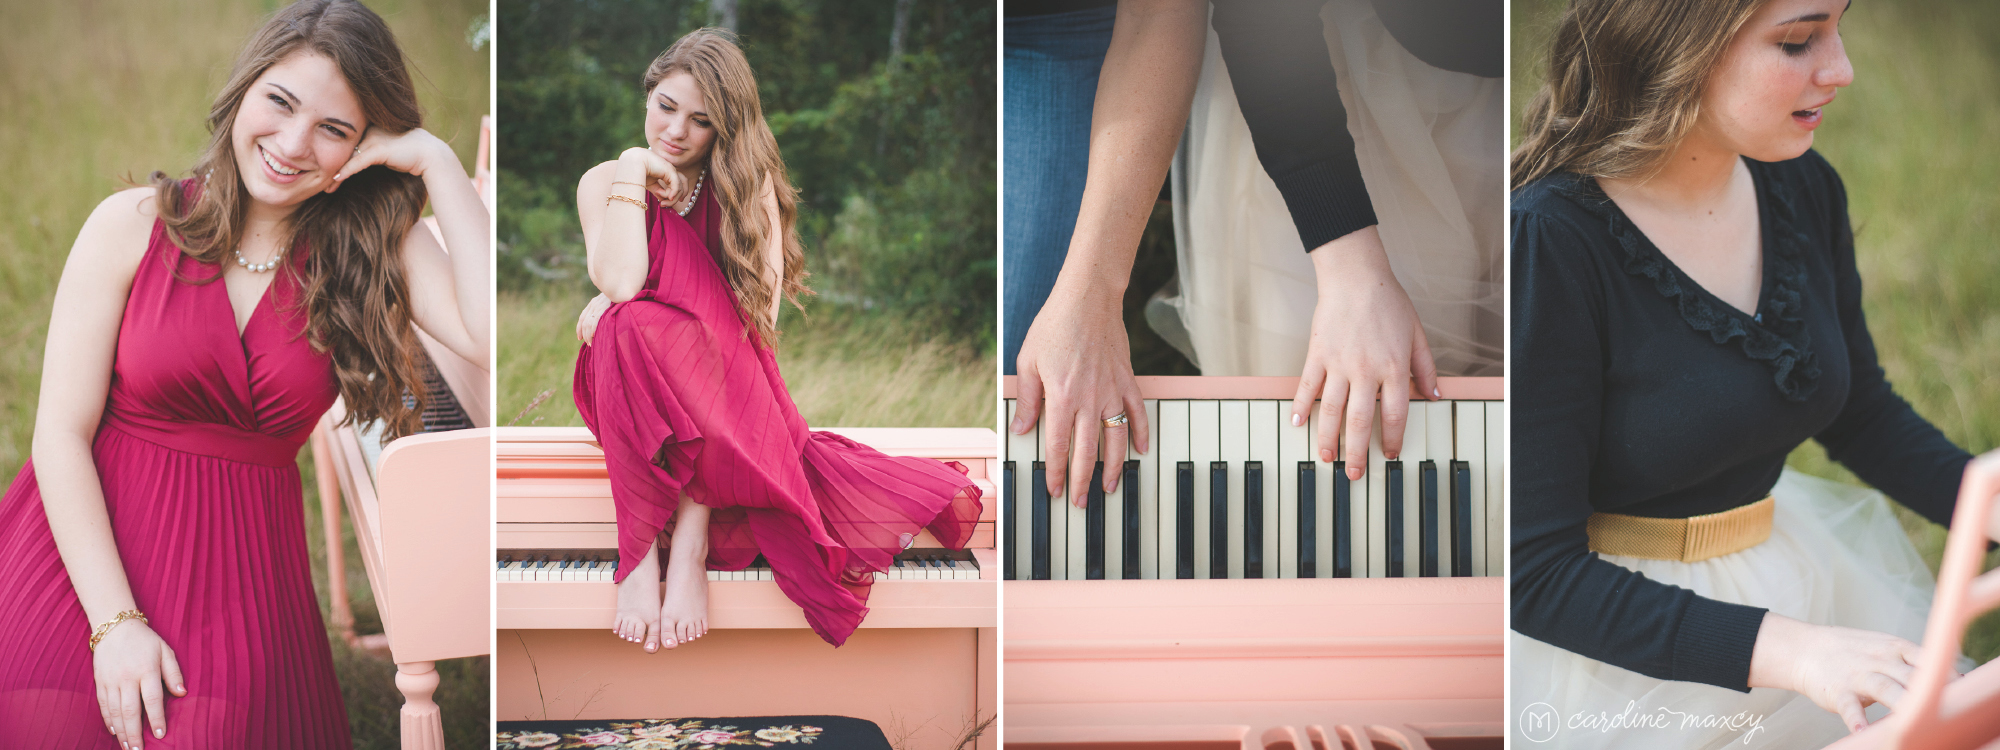 Sebring, FL Senior Photography with Caroline Maxcy Photography and a piano in a field.